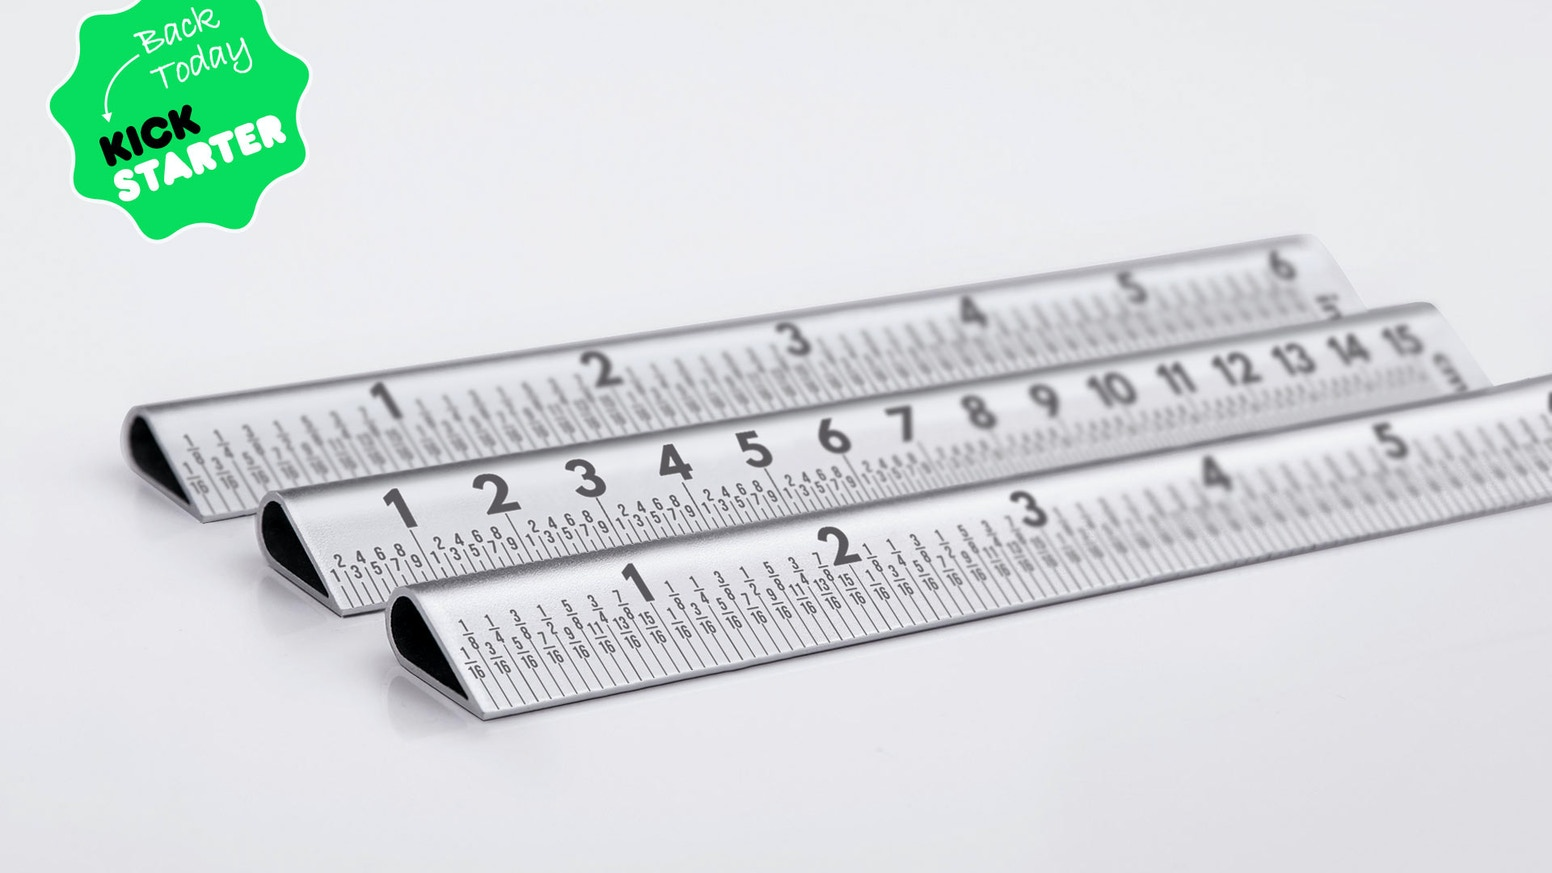 A laser engraved, aerospace aluminium ruler set at a practical 30° angle. Designed for designers, suitable for everyone